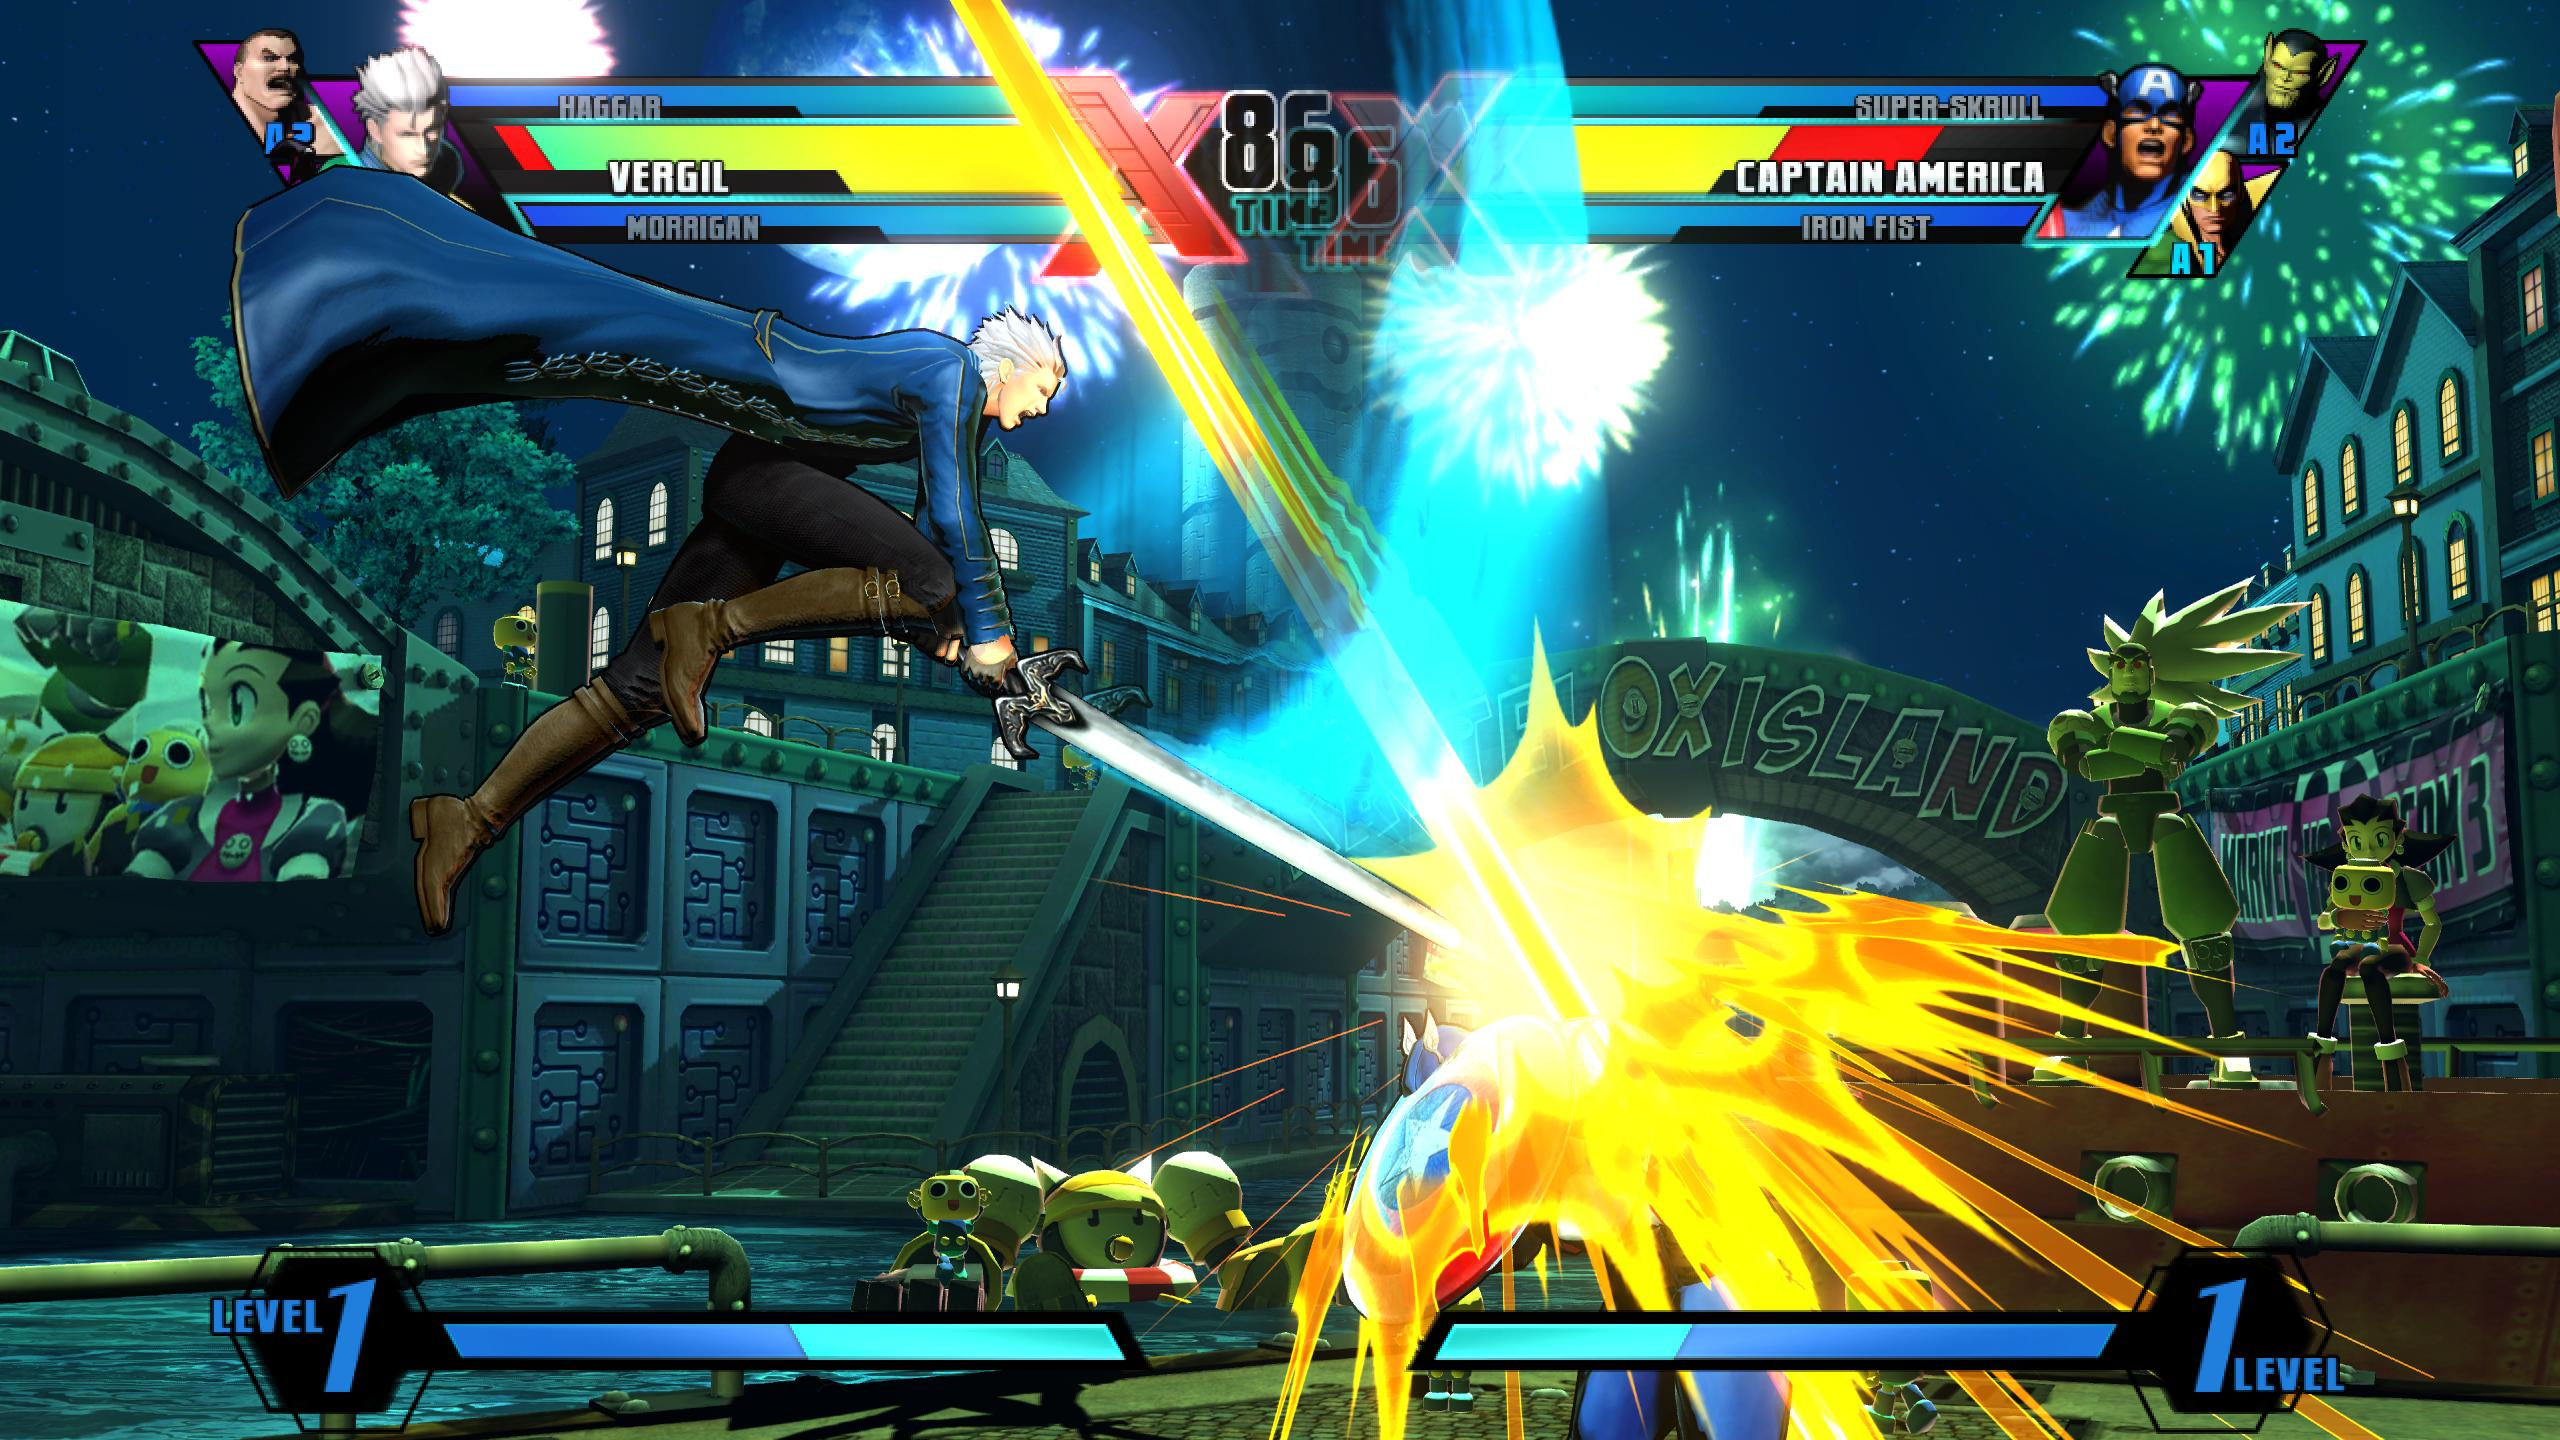 Vergil dans Ultimate Marvel vs. Capcom 3 6150583471_2ba283225a_o